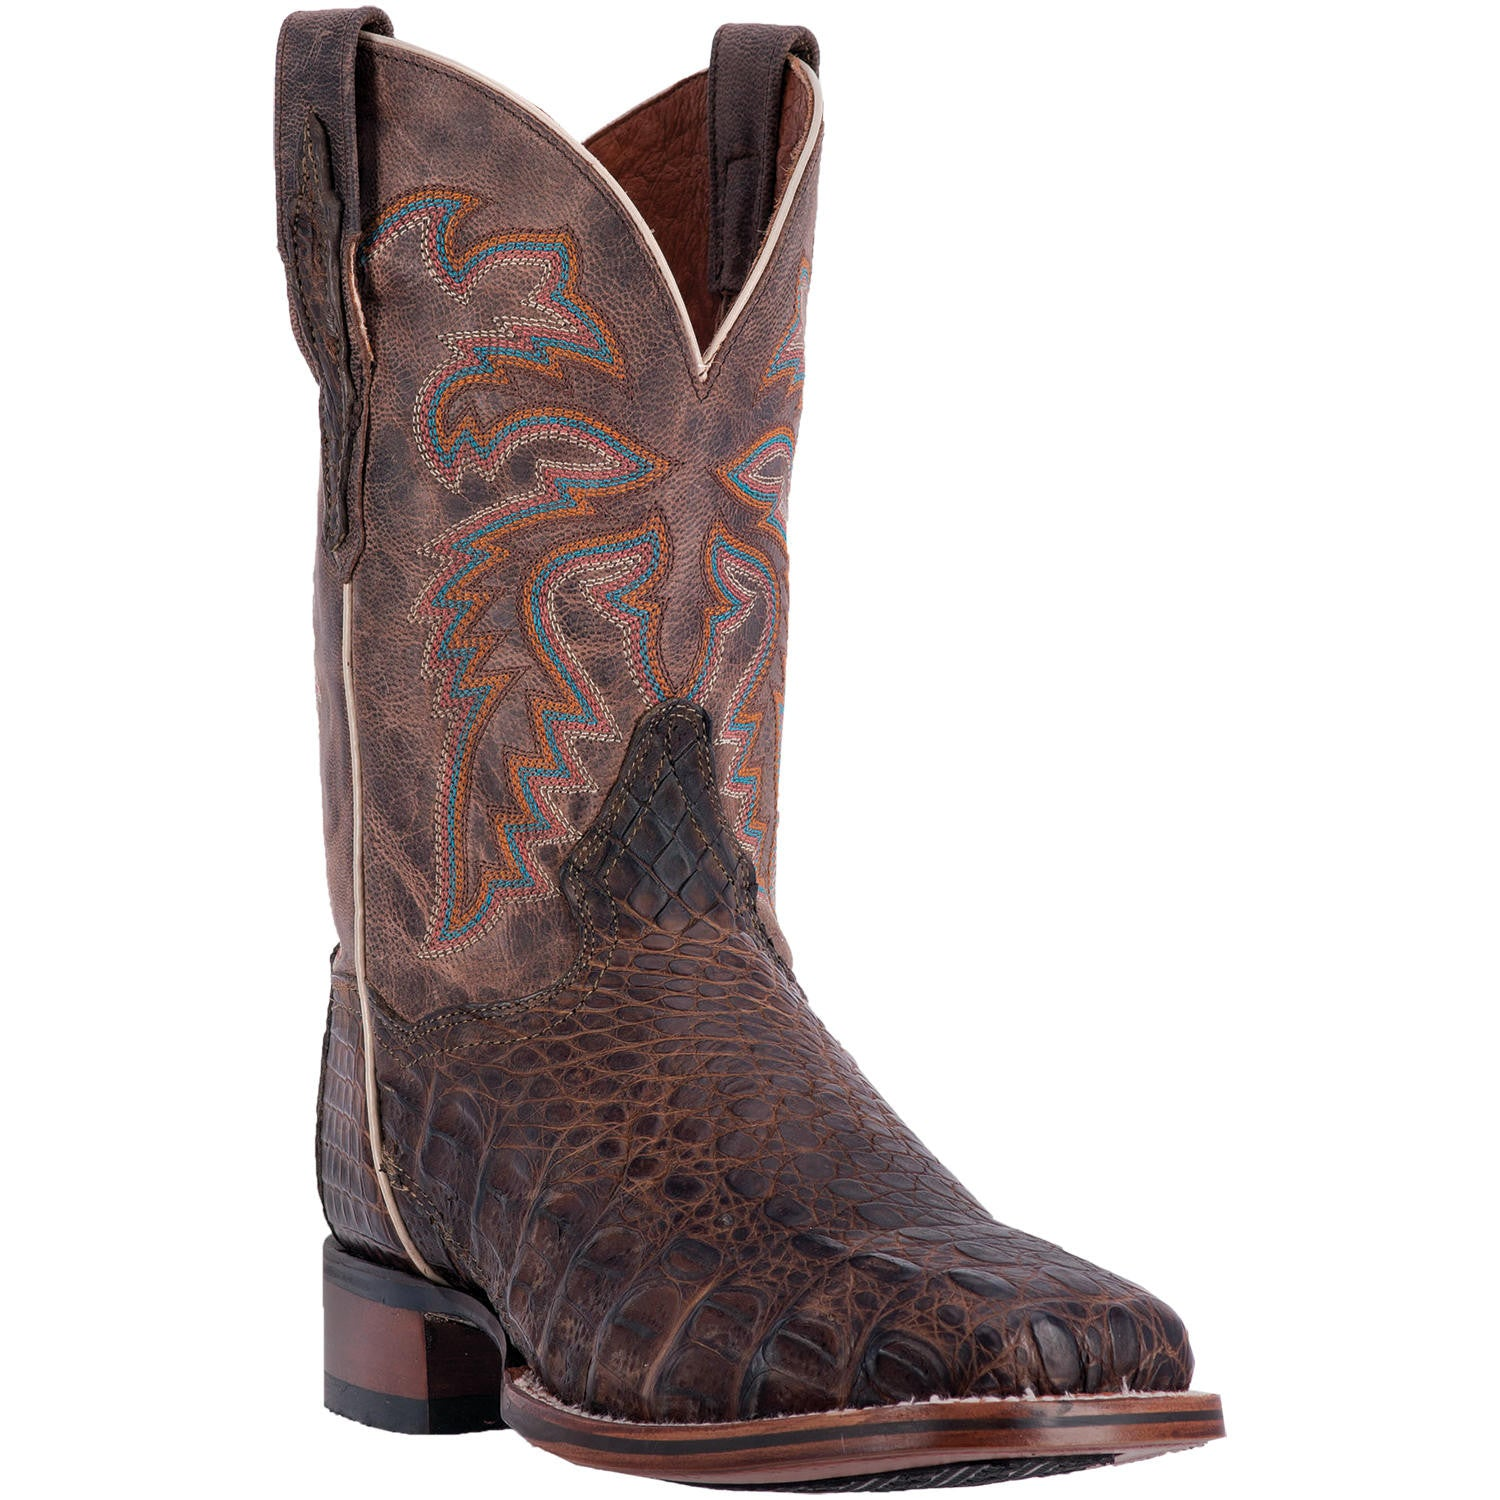 DAN POST MEN'S  CAIMAN DENVER COGNAC